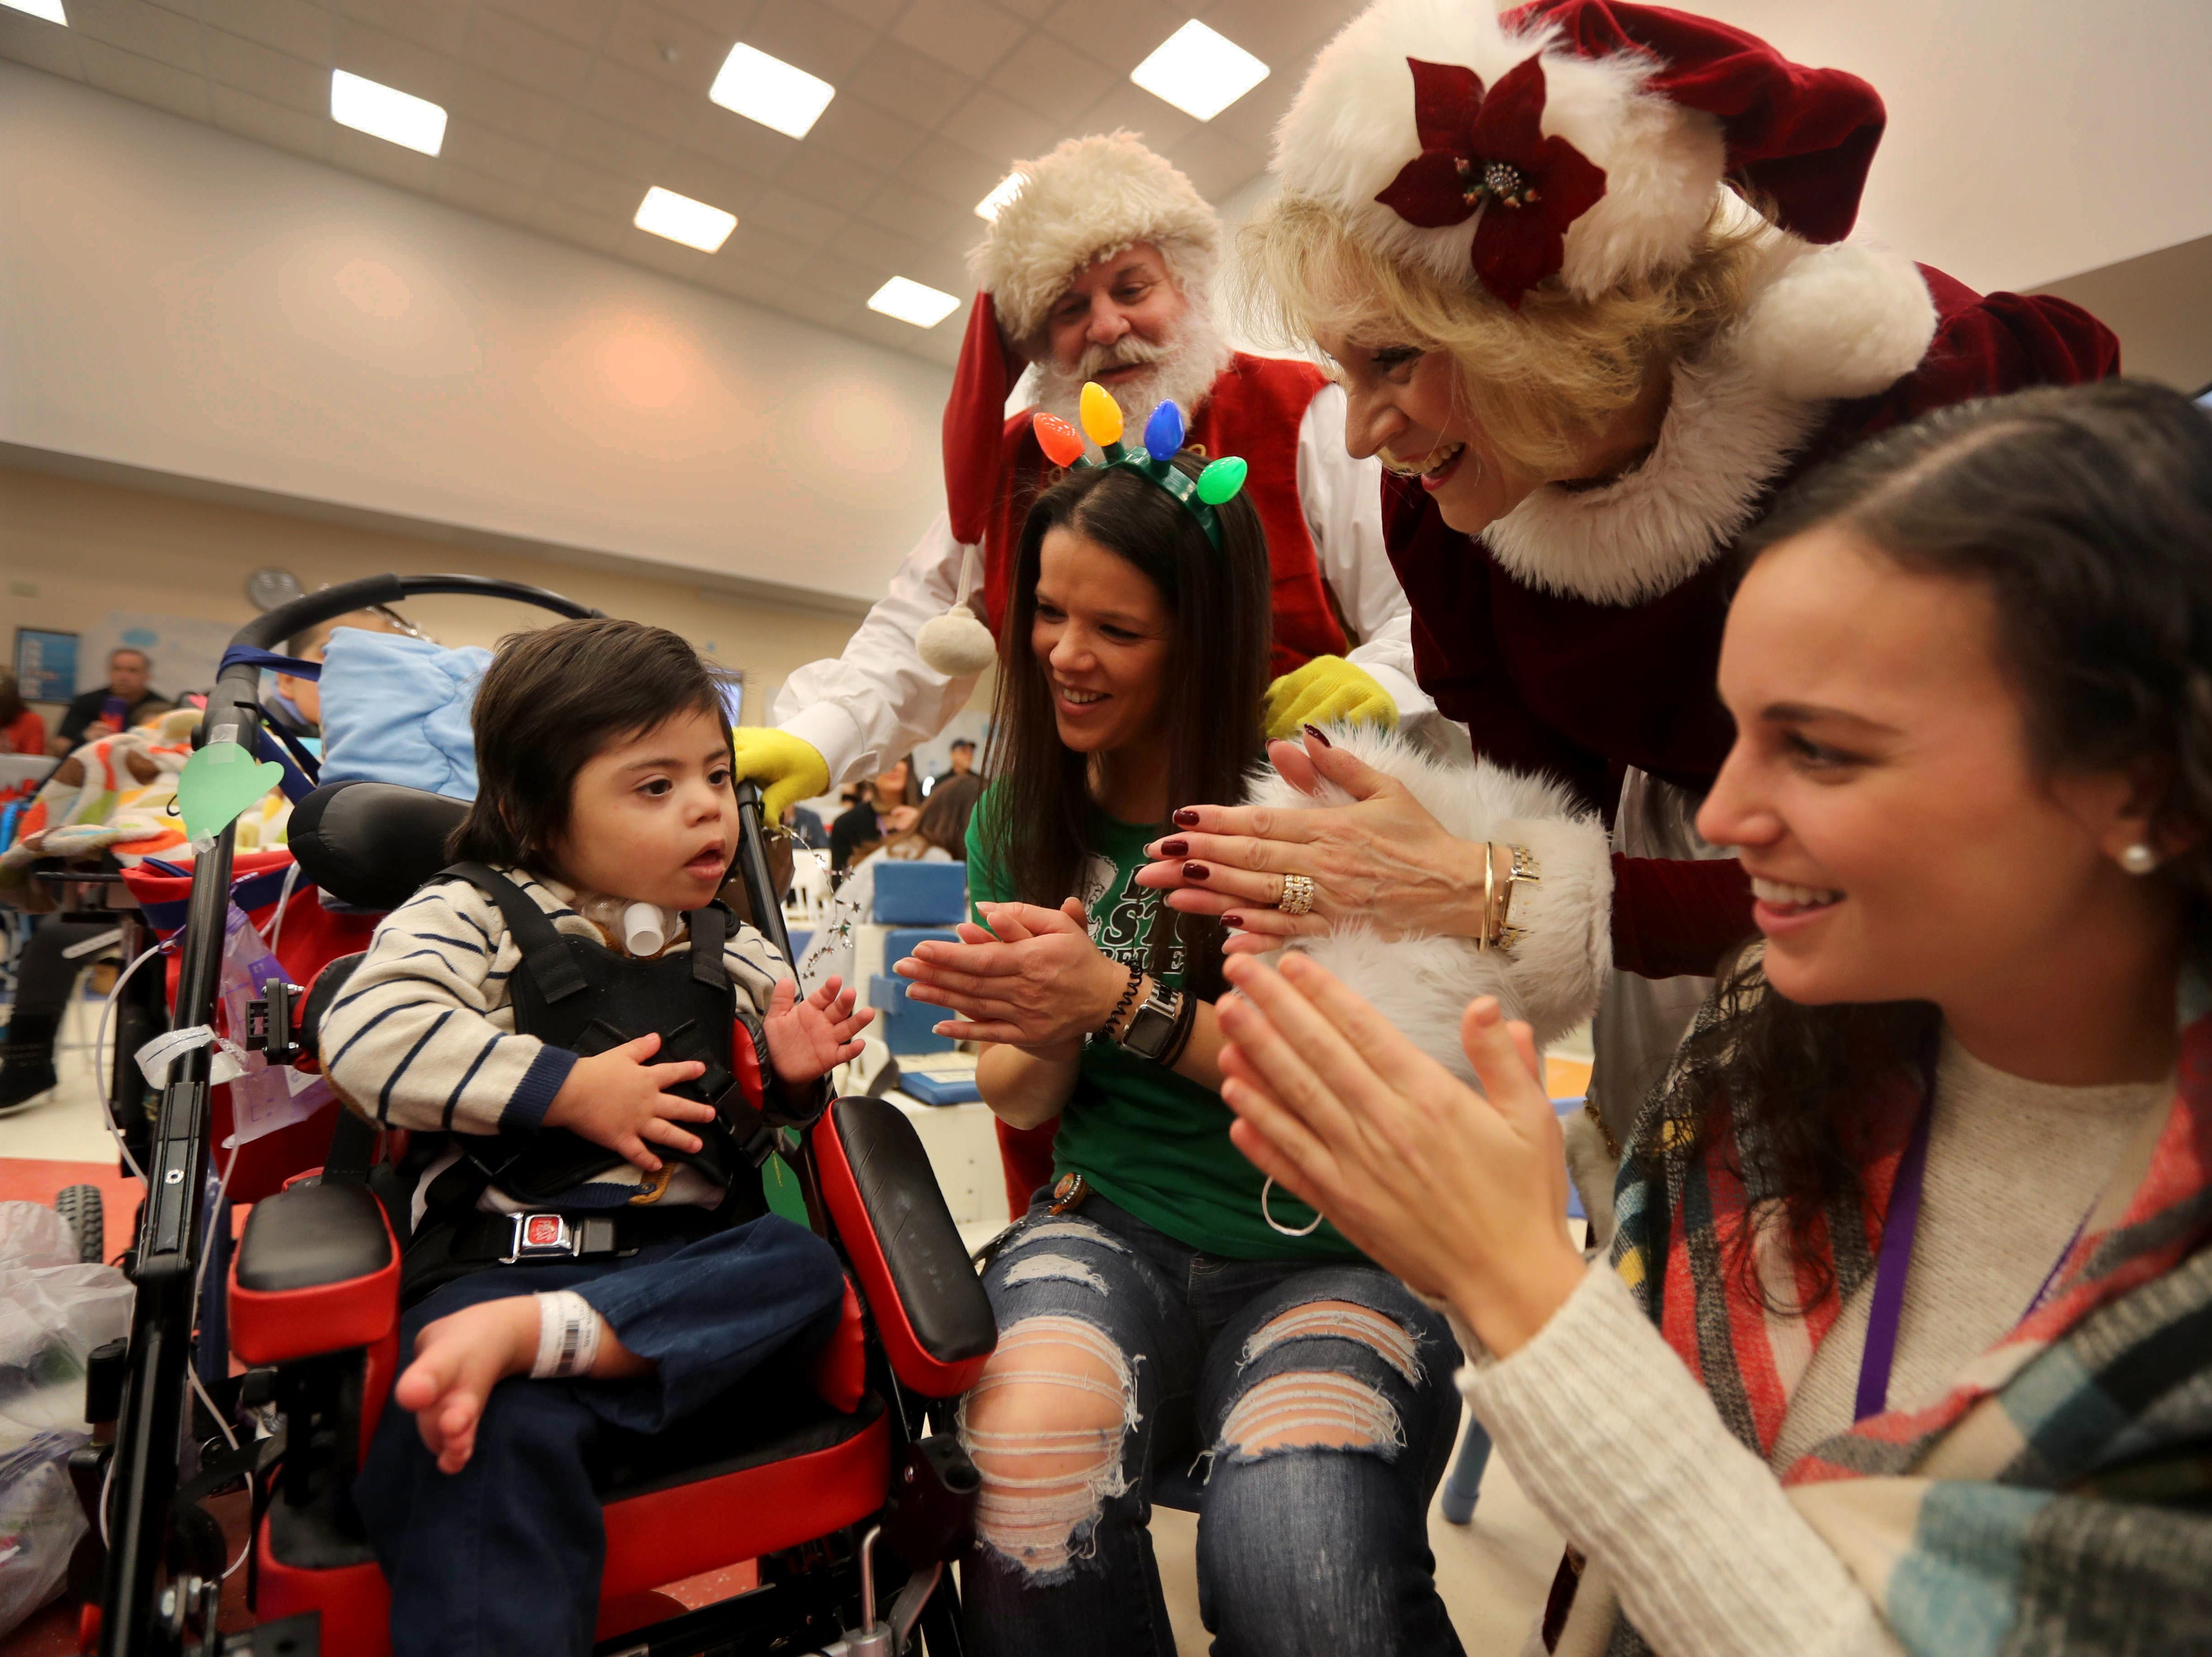 Paul Lopez, 3, a patient at Blythedale Children's Hospital in Valhalla, enjoys holiday music with speech therapists Jessica Catalano and Michelle Hesari, along with Santa and Mrs. Claus during the annual holiday show at the hospital Dec. 14, 2018. Scott Shannon, morning disc jockey with WCBS-FM hosts the show every year. This year's show included performances by Rob Thomas of Matchbox Twenty, Mark Rivera, who is Billy Joel's longtime saxophonist, and Grammy nominated singer and songwriter Gavin DeGraw. The event included a live auction that featured autographed guitars by Jon Bon Jovi and Rob Thomas and tickets to a Billy Joel concert at Madison Square Garden.